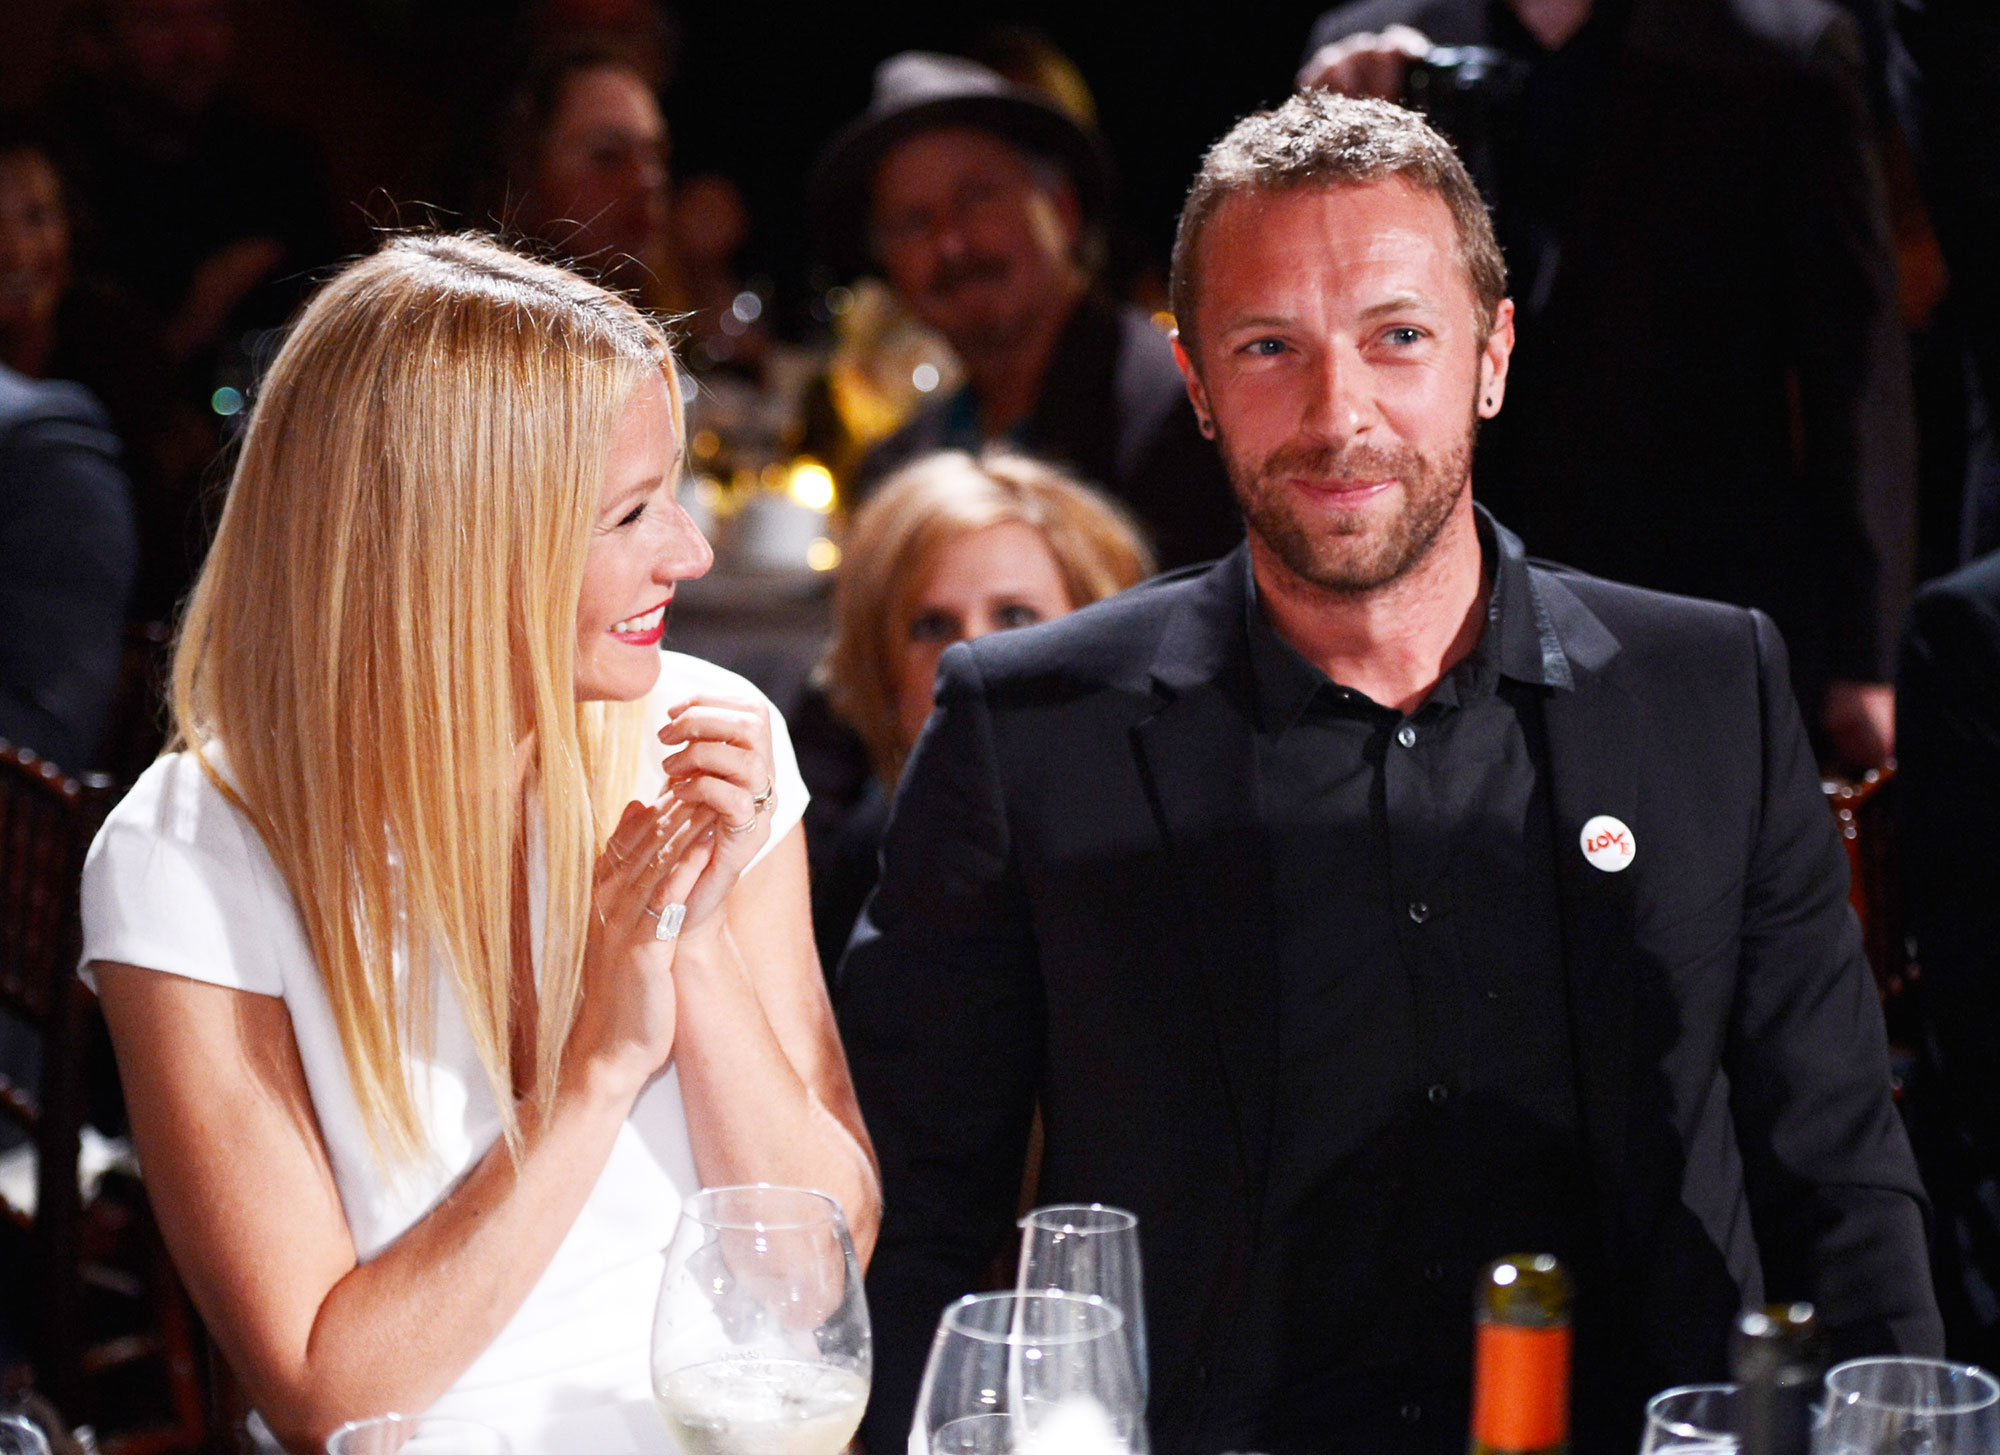 Gwyneth Paltrow and Chris Martin Gwyneth Paltrow: 'I'll Write a Book' One Day About 'Conscious Uncoupling'